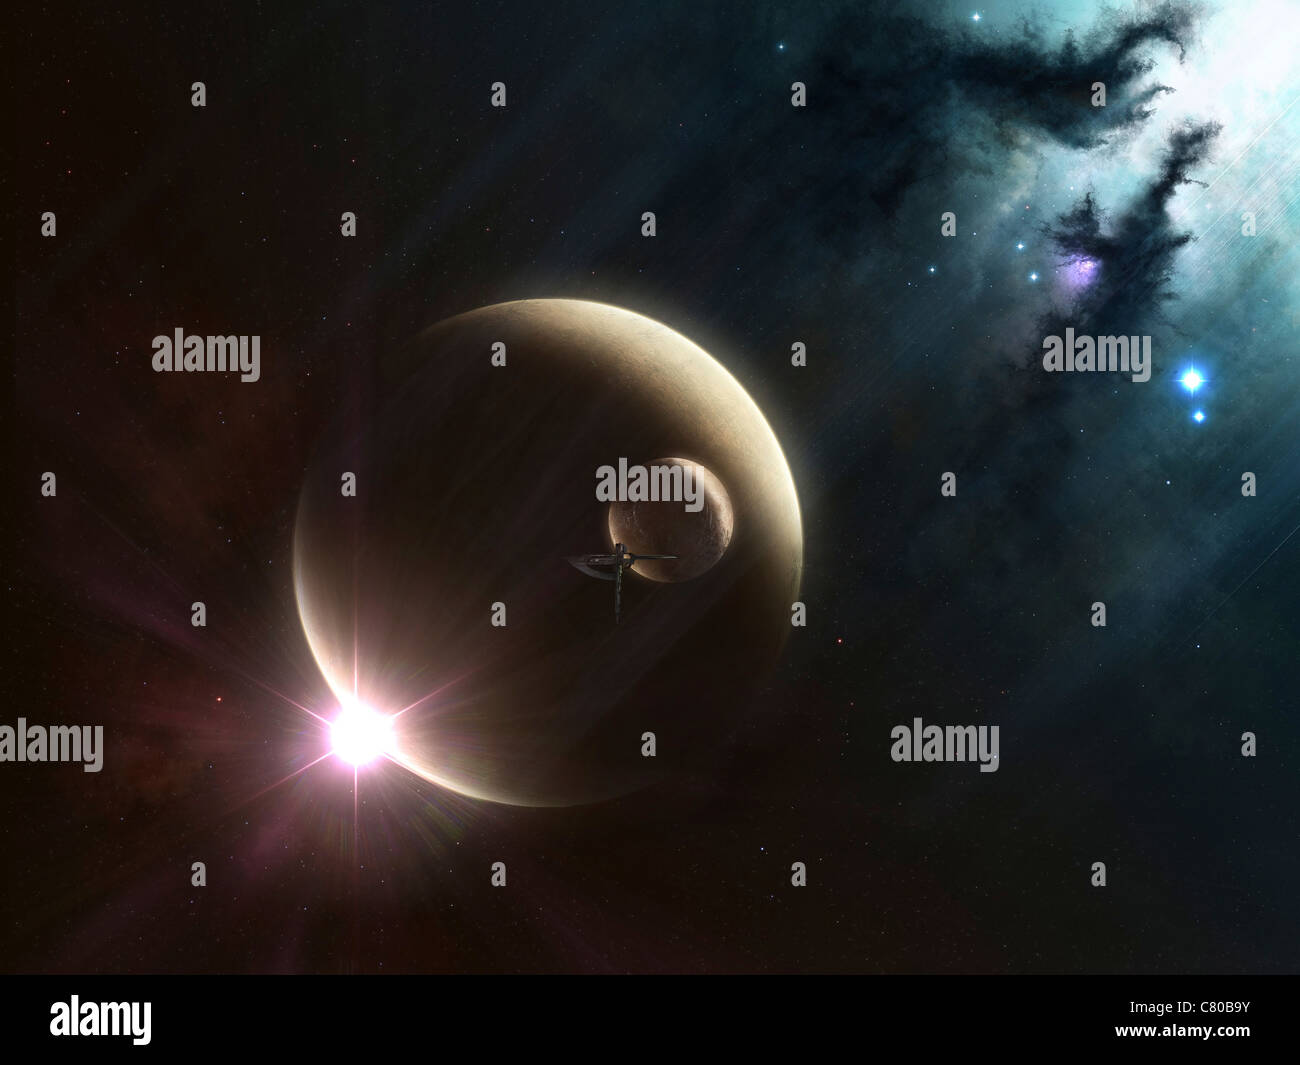 Artist's concept of two dusty moons. - Stock Image